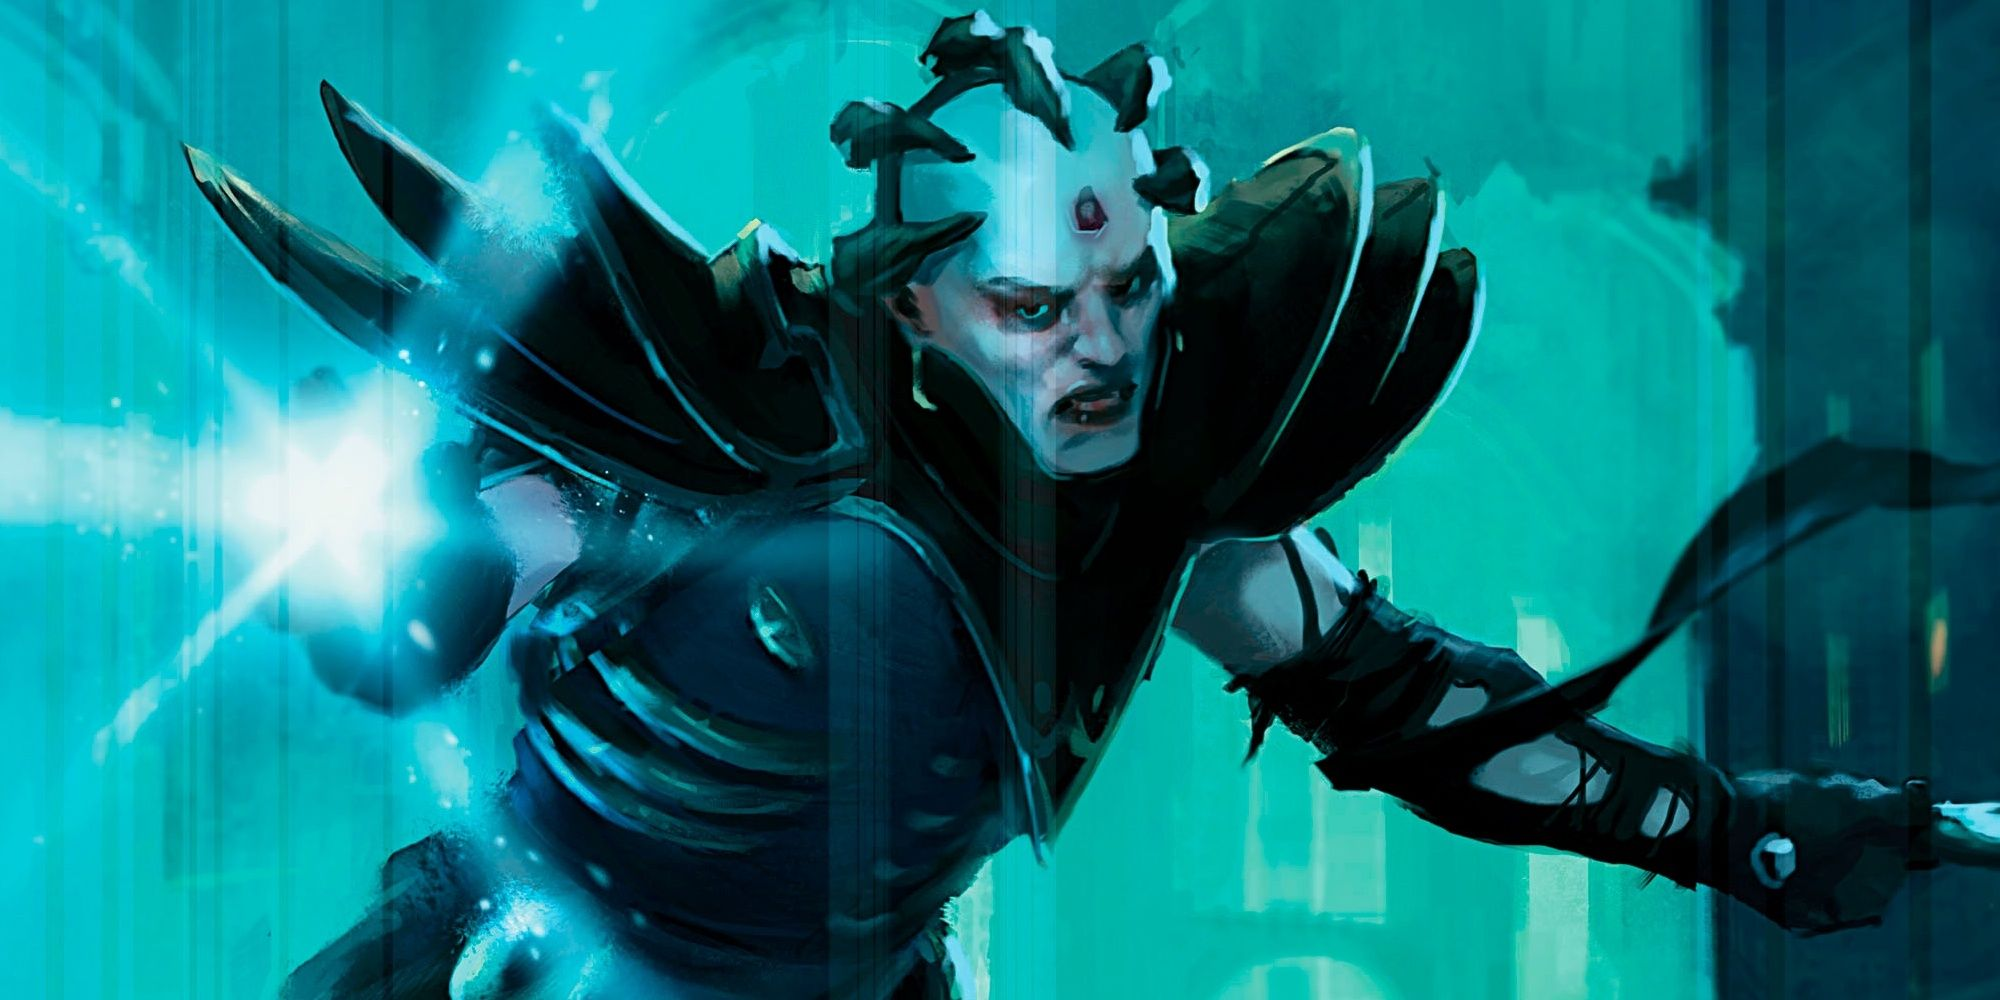 Magic: The Gathering - House Dimir, the Shadowy Guild of Ravnica, Explained